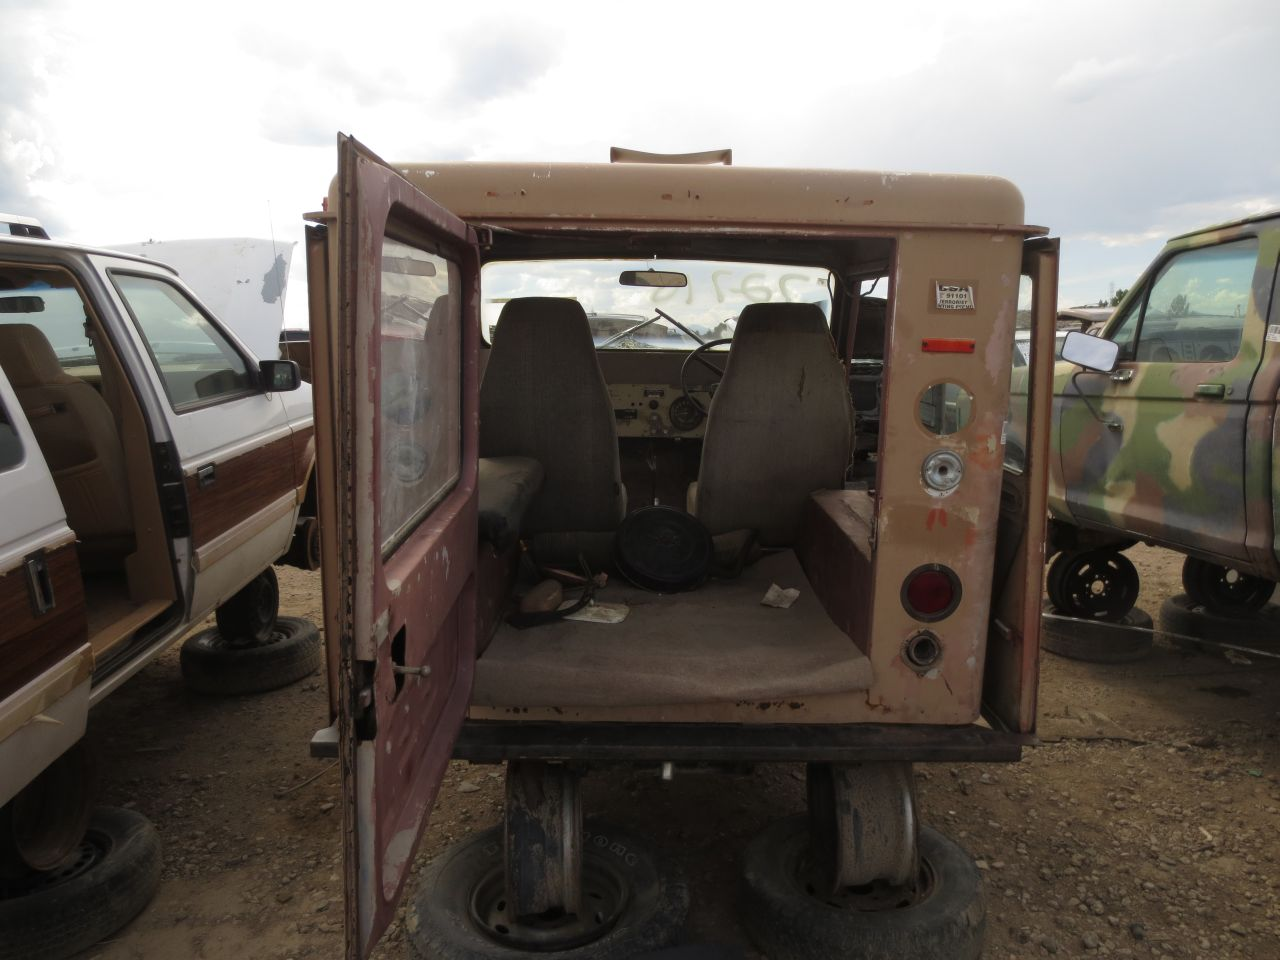 junkyard find 1971 am general dj 5b mail jeep the truth about cars rh thetruthaboutcars com